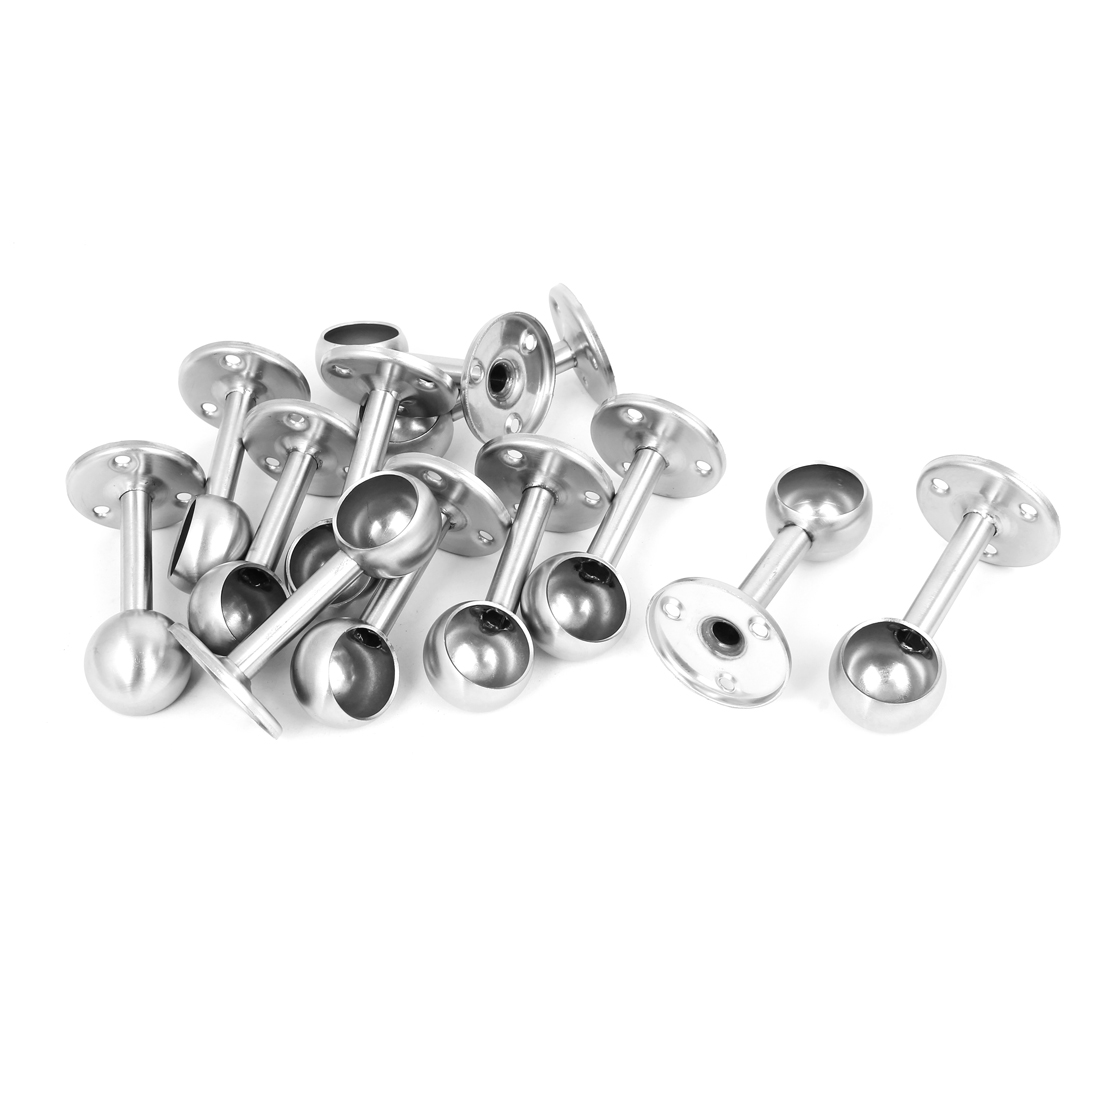 25mm Stainless Steel Wardrobe Rod Rail End Clothes Lever Support Bracket 12 Pcs